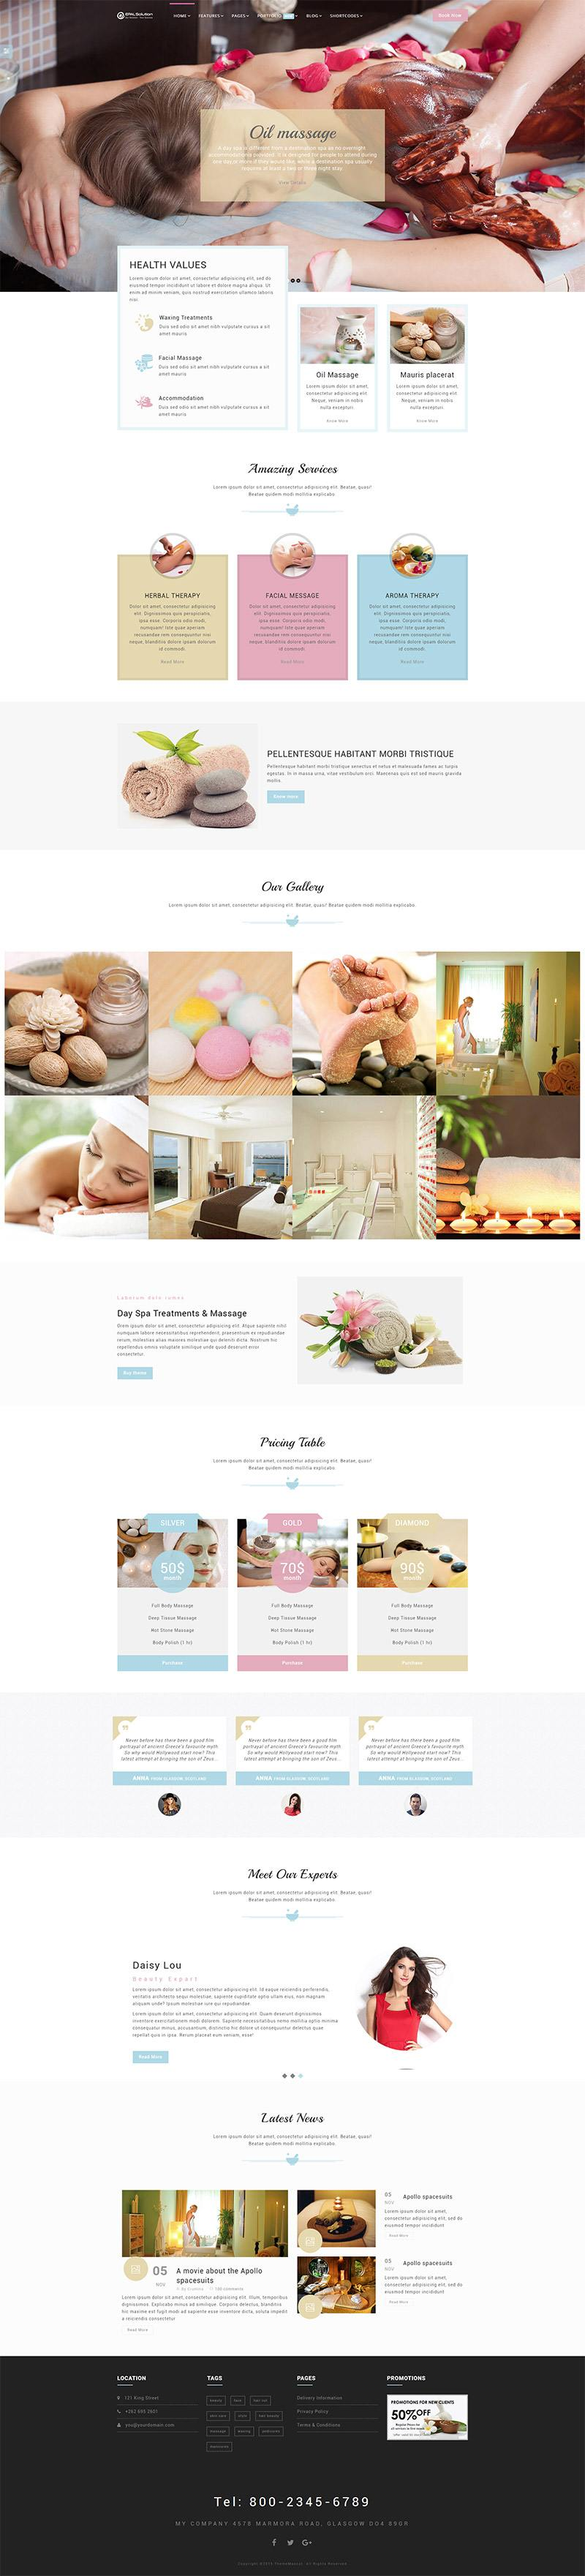 Giao-dien-website-royal-spa